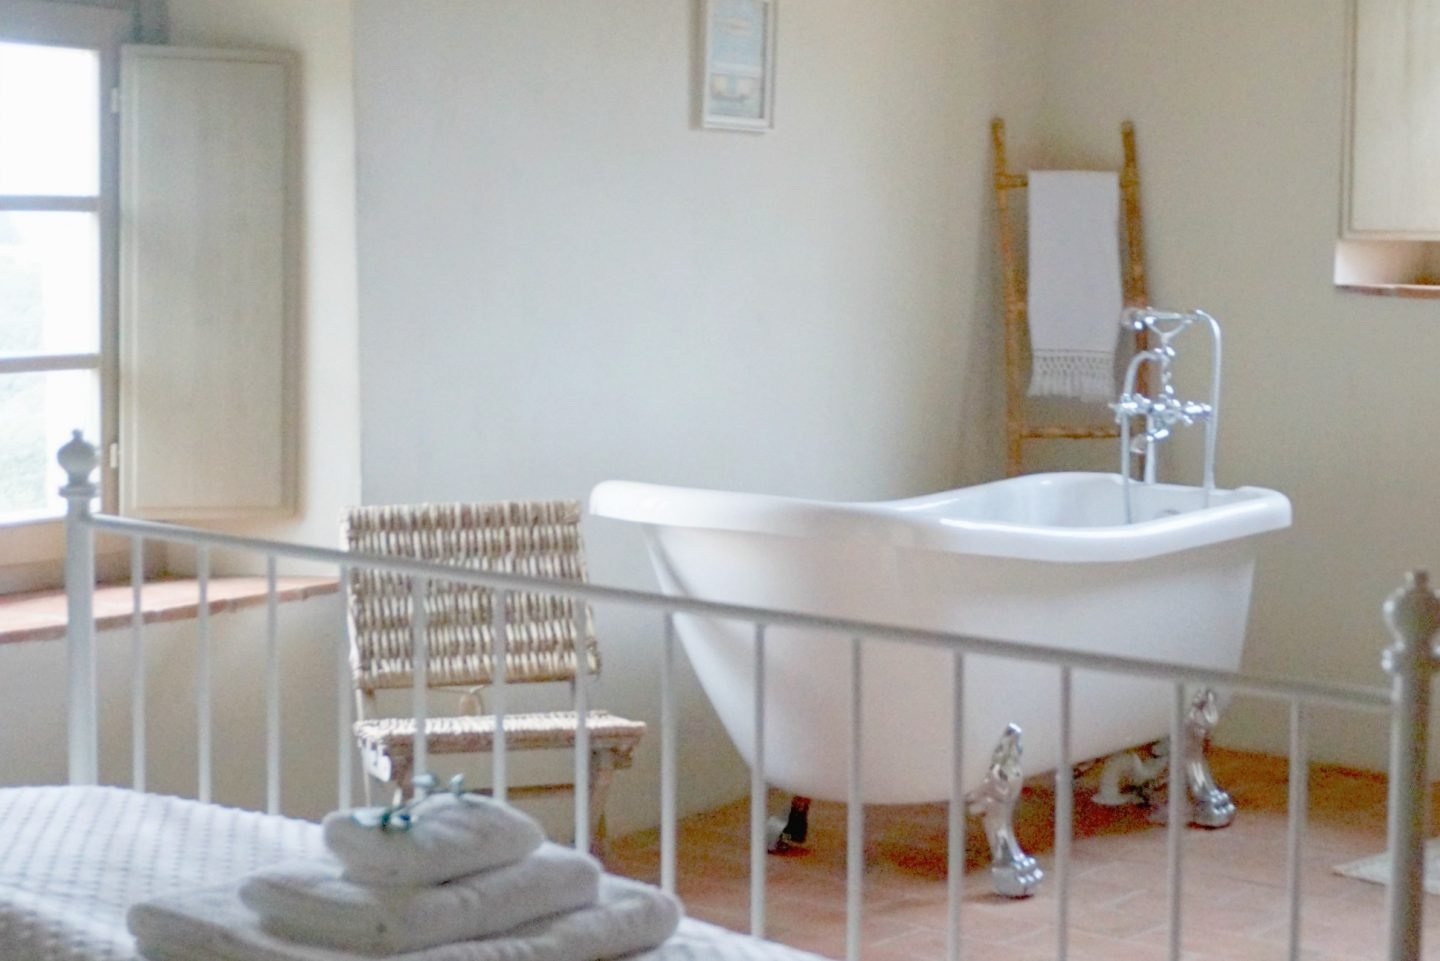 Freestanding Bath at Booking For You Country Relais & Spa Le Capanne is a 100+ year old farmhouse www.extraordinarychaos.com